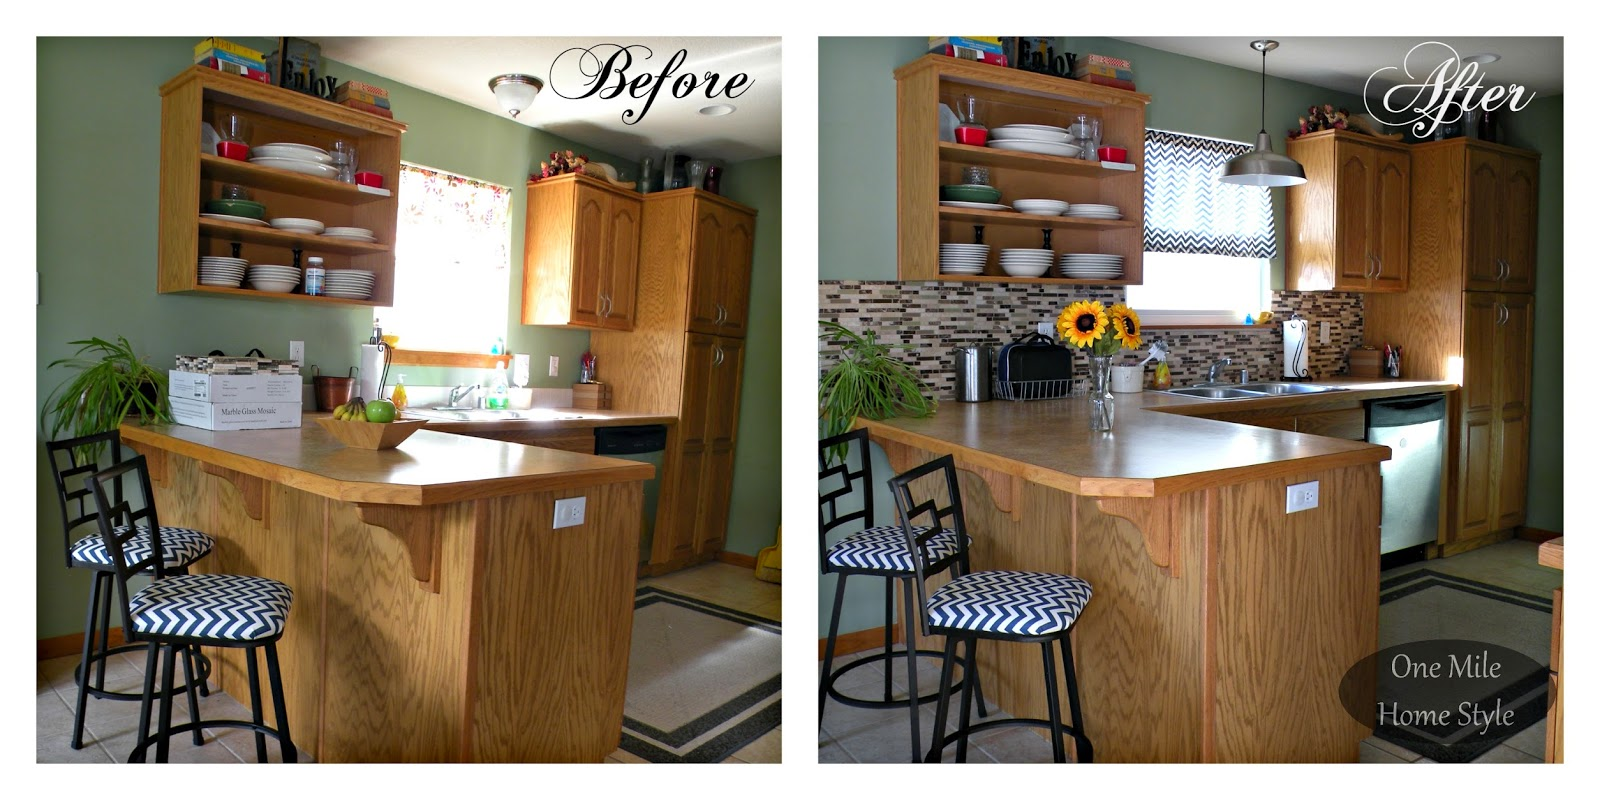 Kitchen Mini-Makeover - Before and After